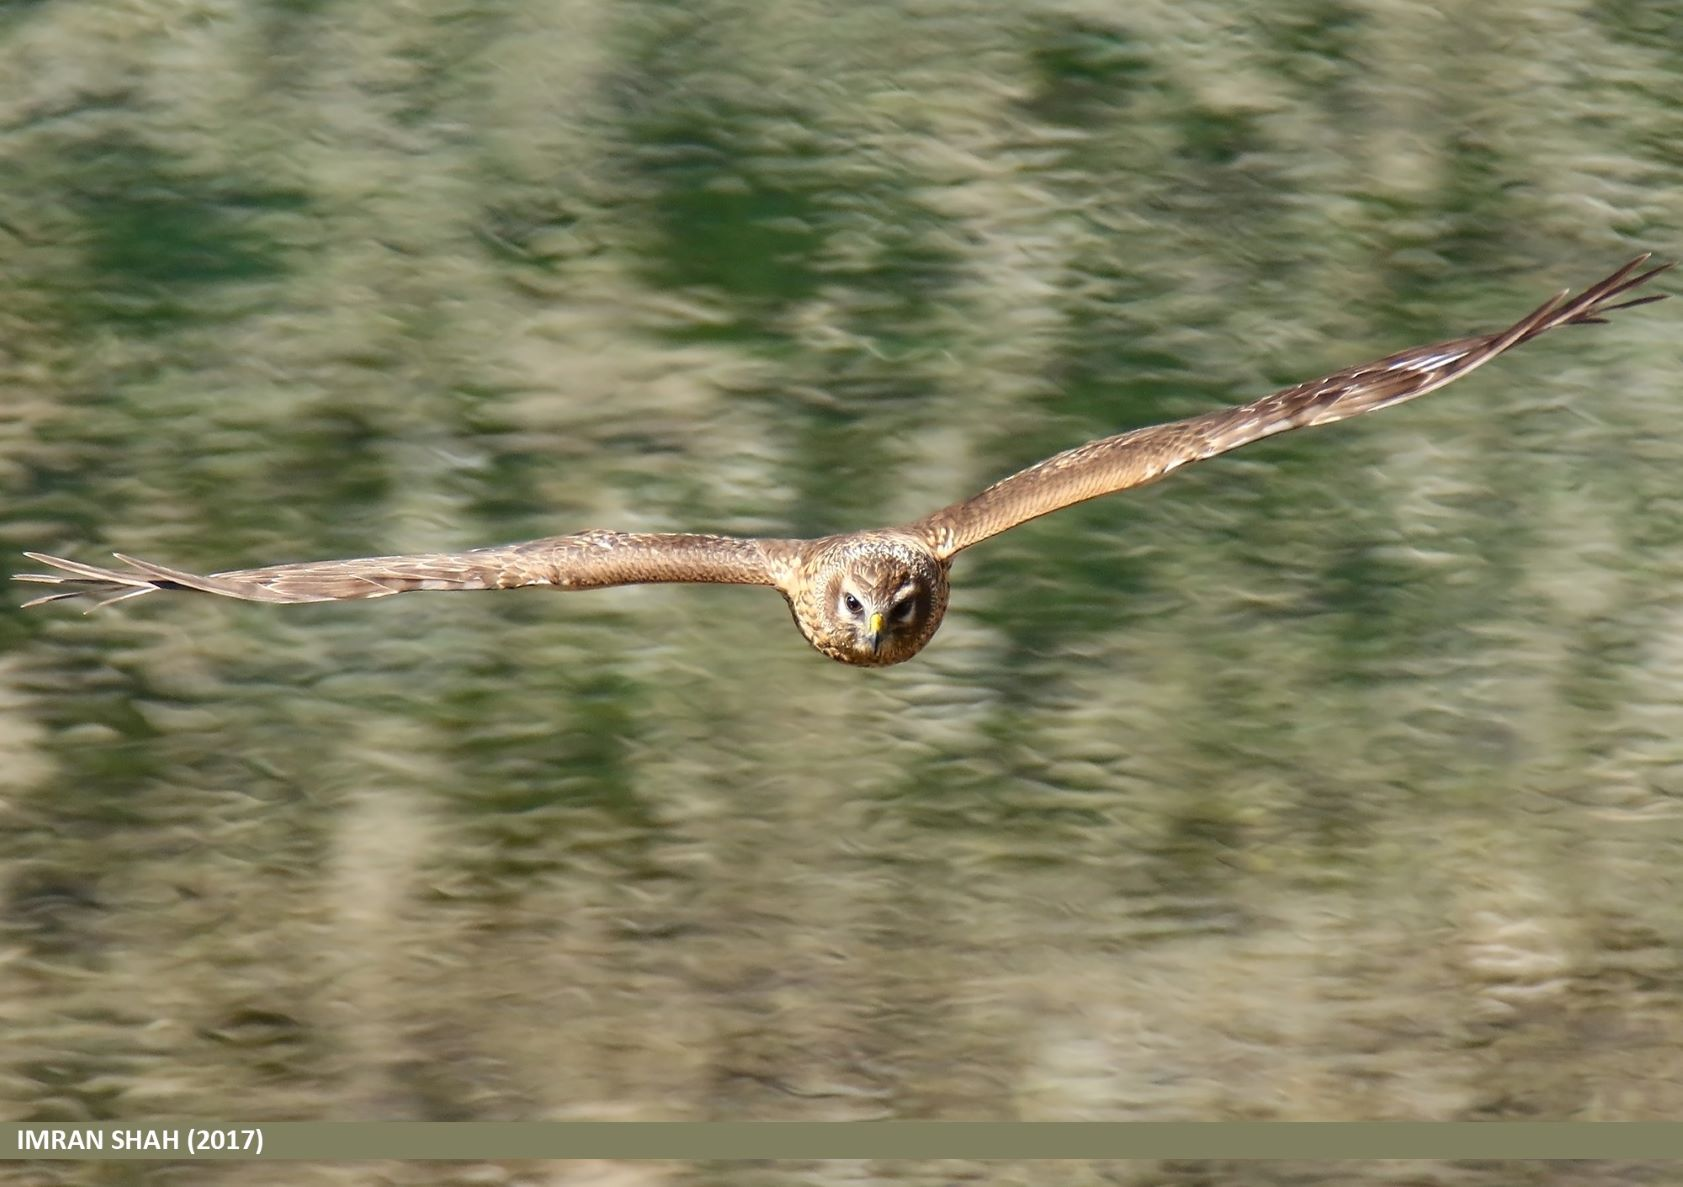 A hen harrier (Circus cyaneus) soars over the landscape.